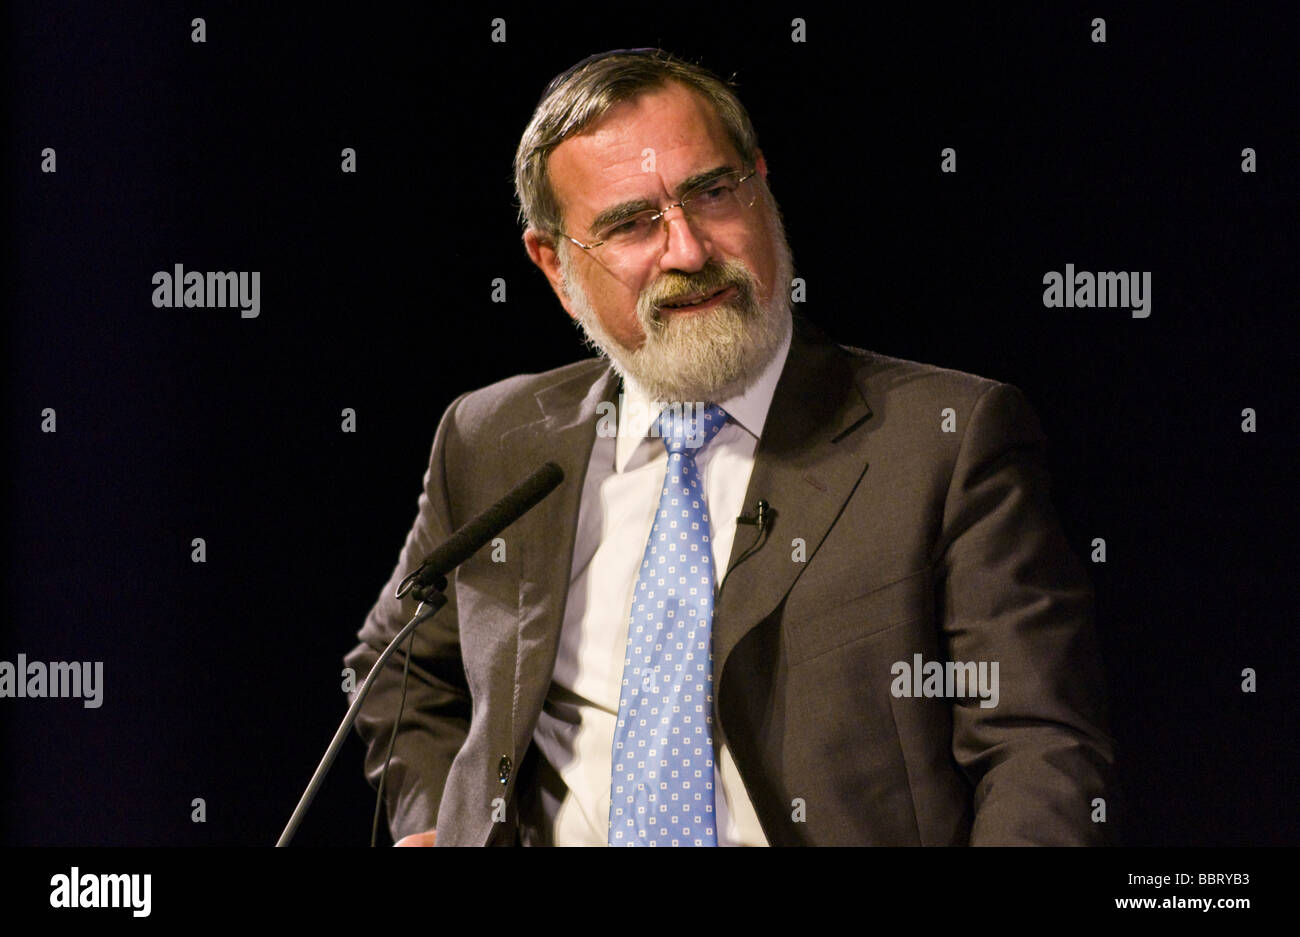 Chief Rabbi Jonathan Sacks pictured at Hay Festival 2009 - Stock Image